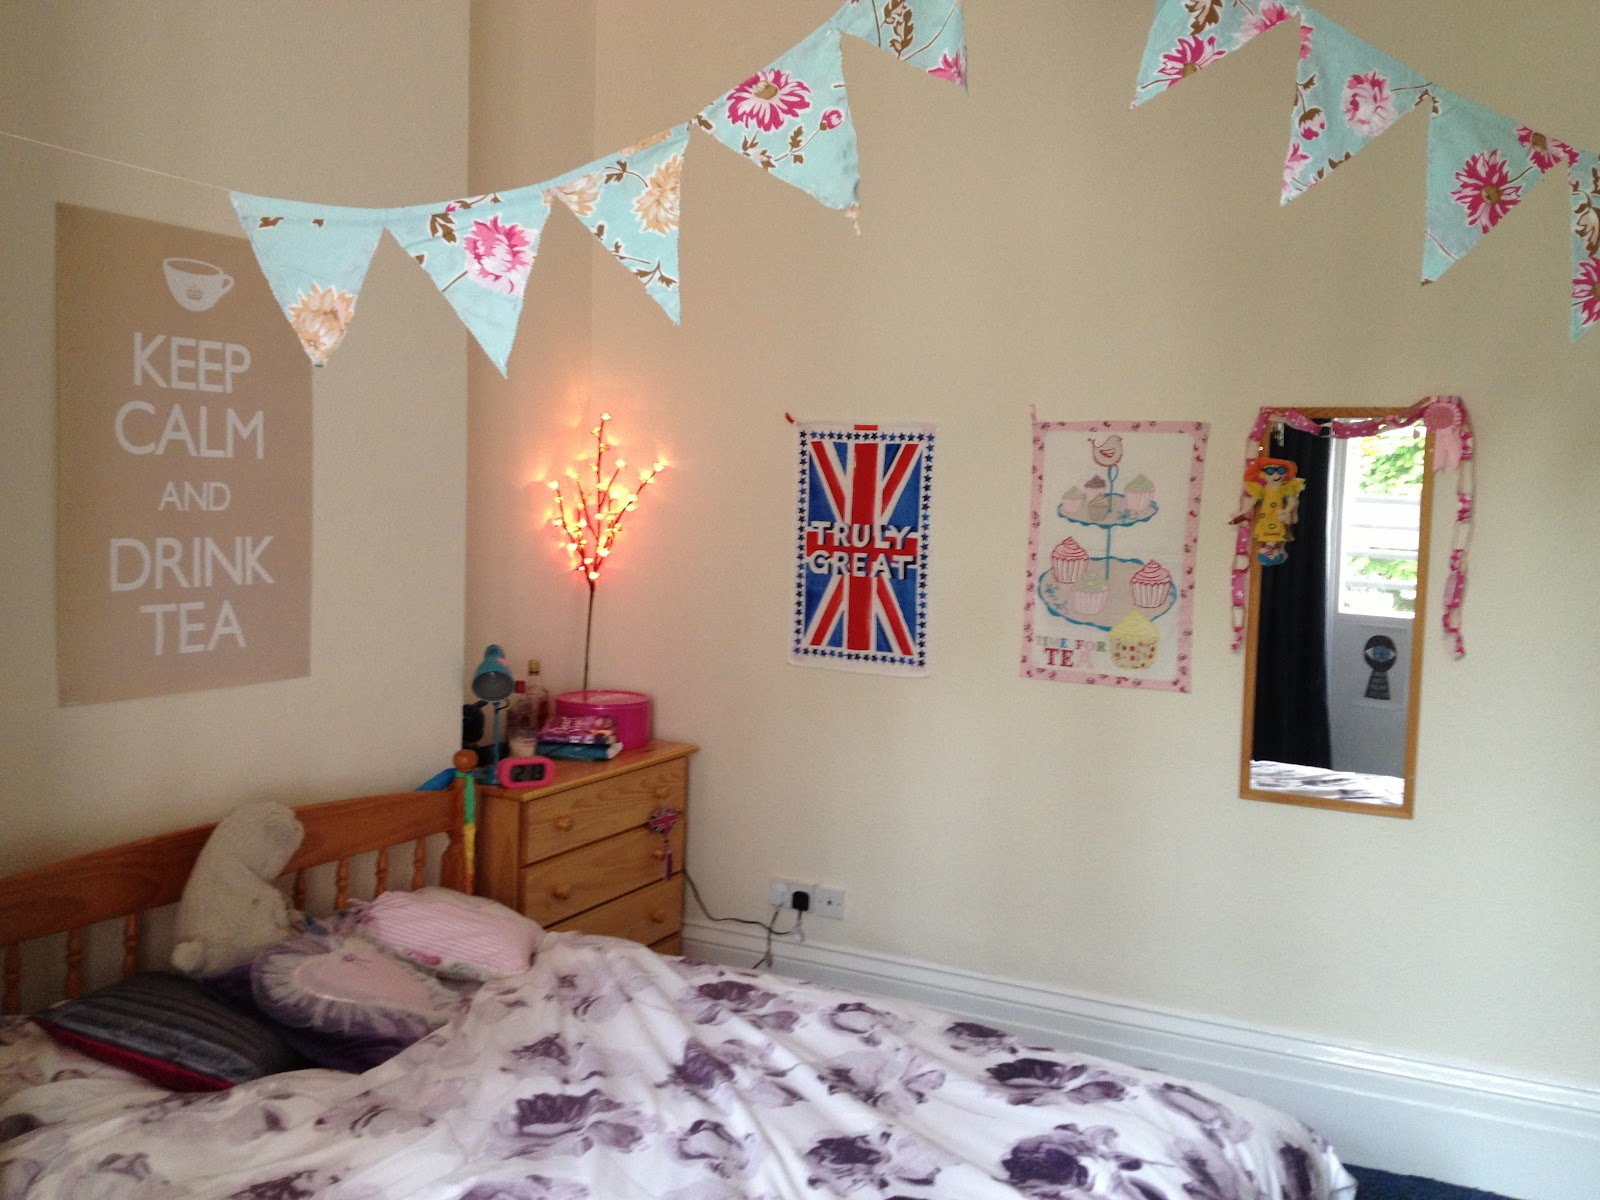 The twenty best ways to decorate your student room at uni handbags and cupcakes - How to decorate simple room ...